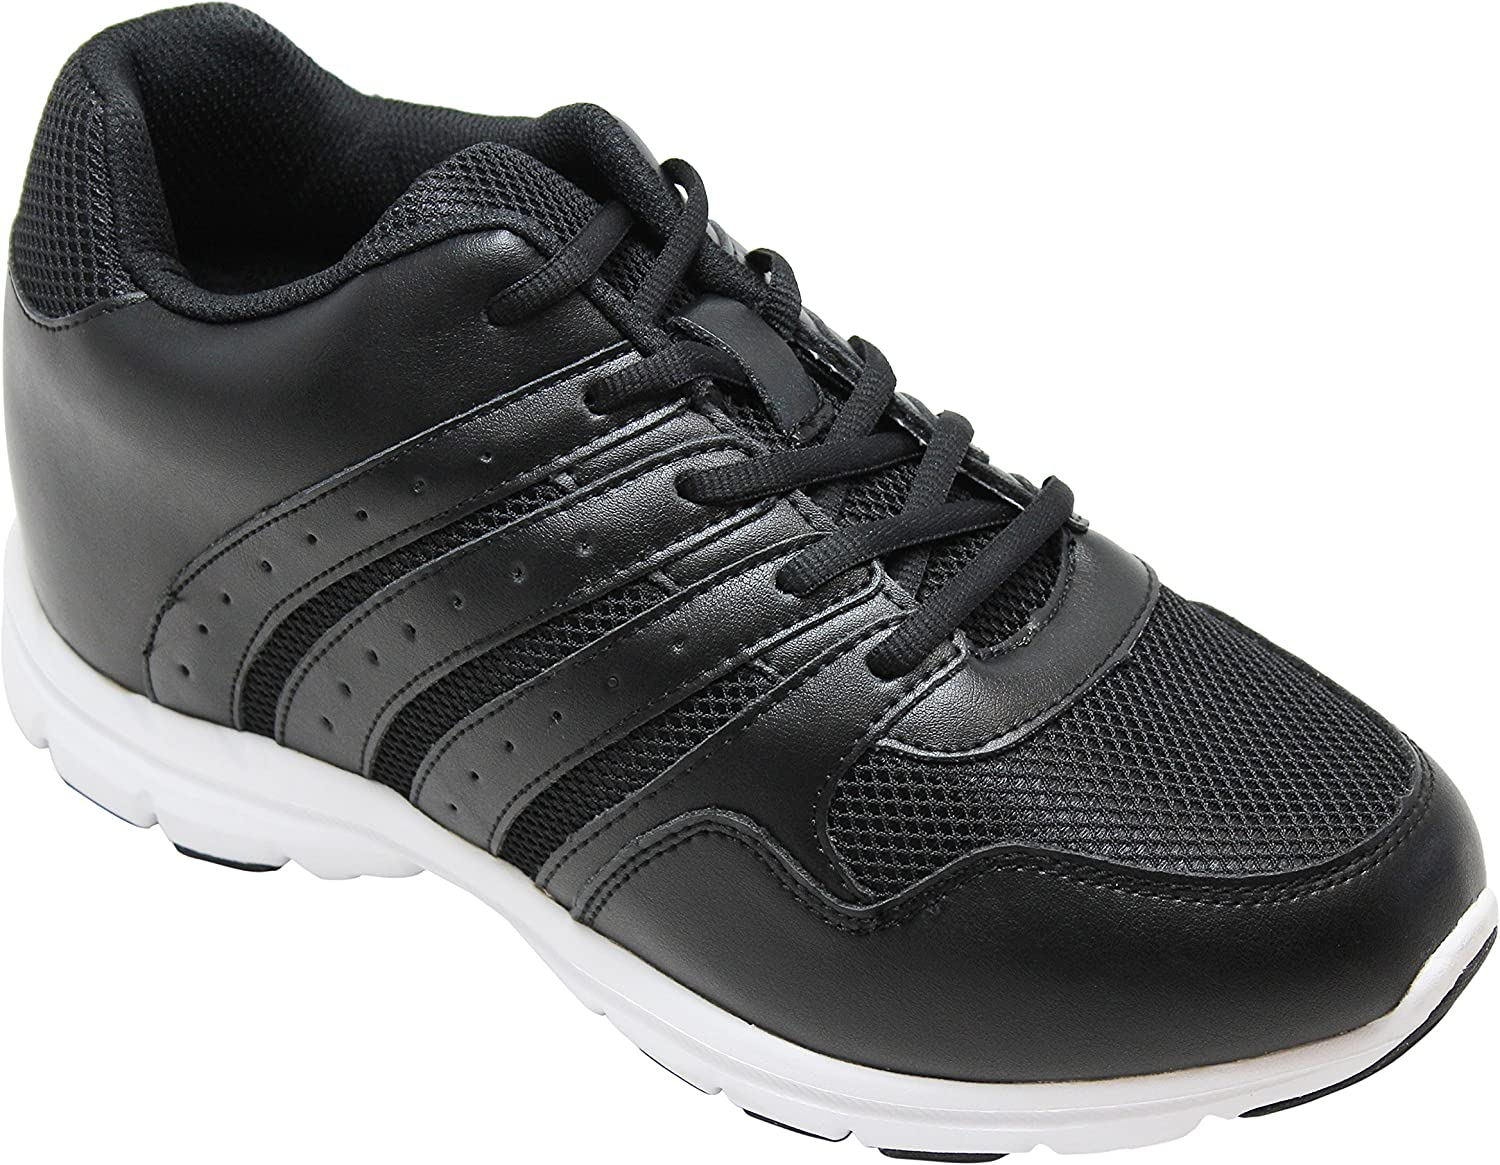 CALTO Men's Invisible Height Increasing Elevator shoes - Black Leather Mesh Lace-up Lightweight Sporty Trainer Sneakers - 3.2 Inches Taller - G8817